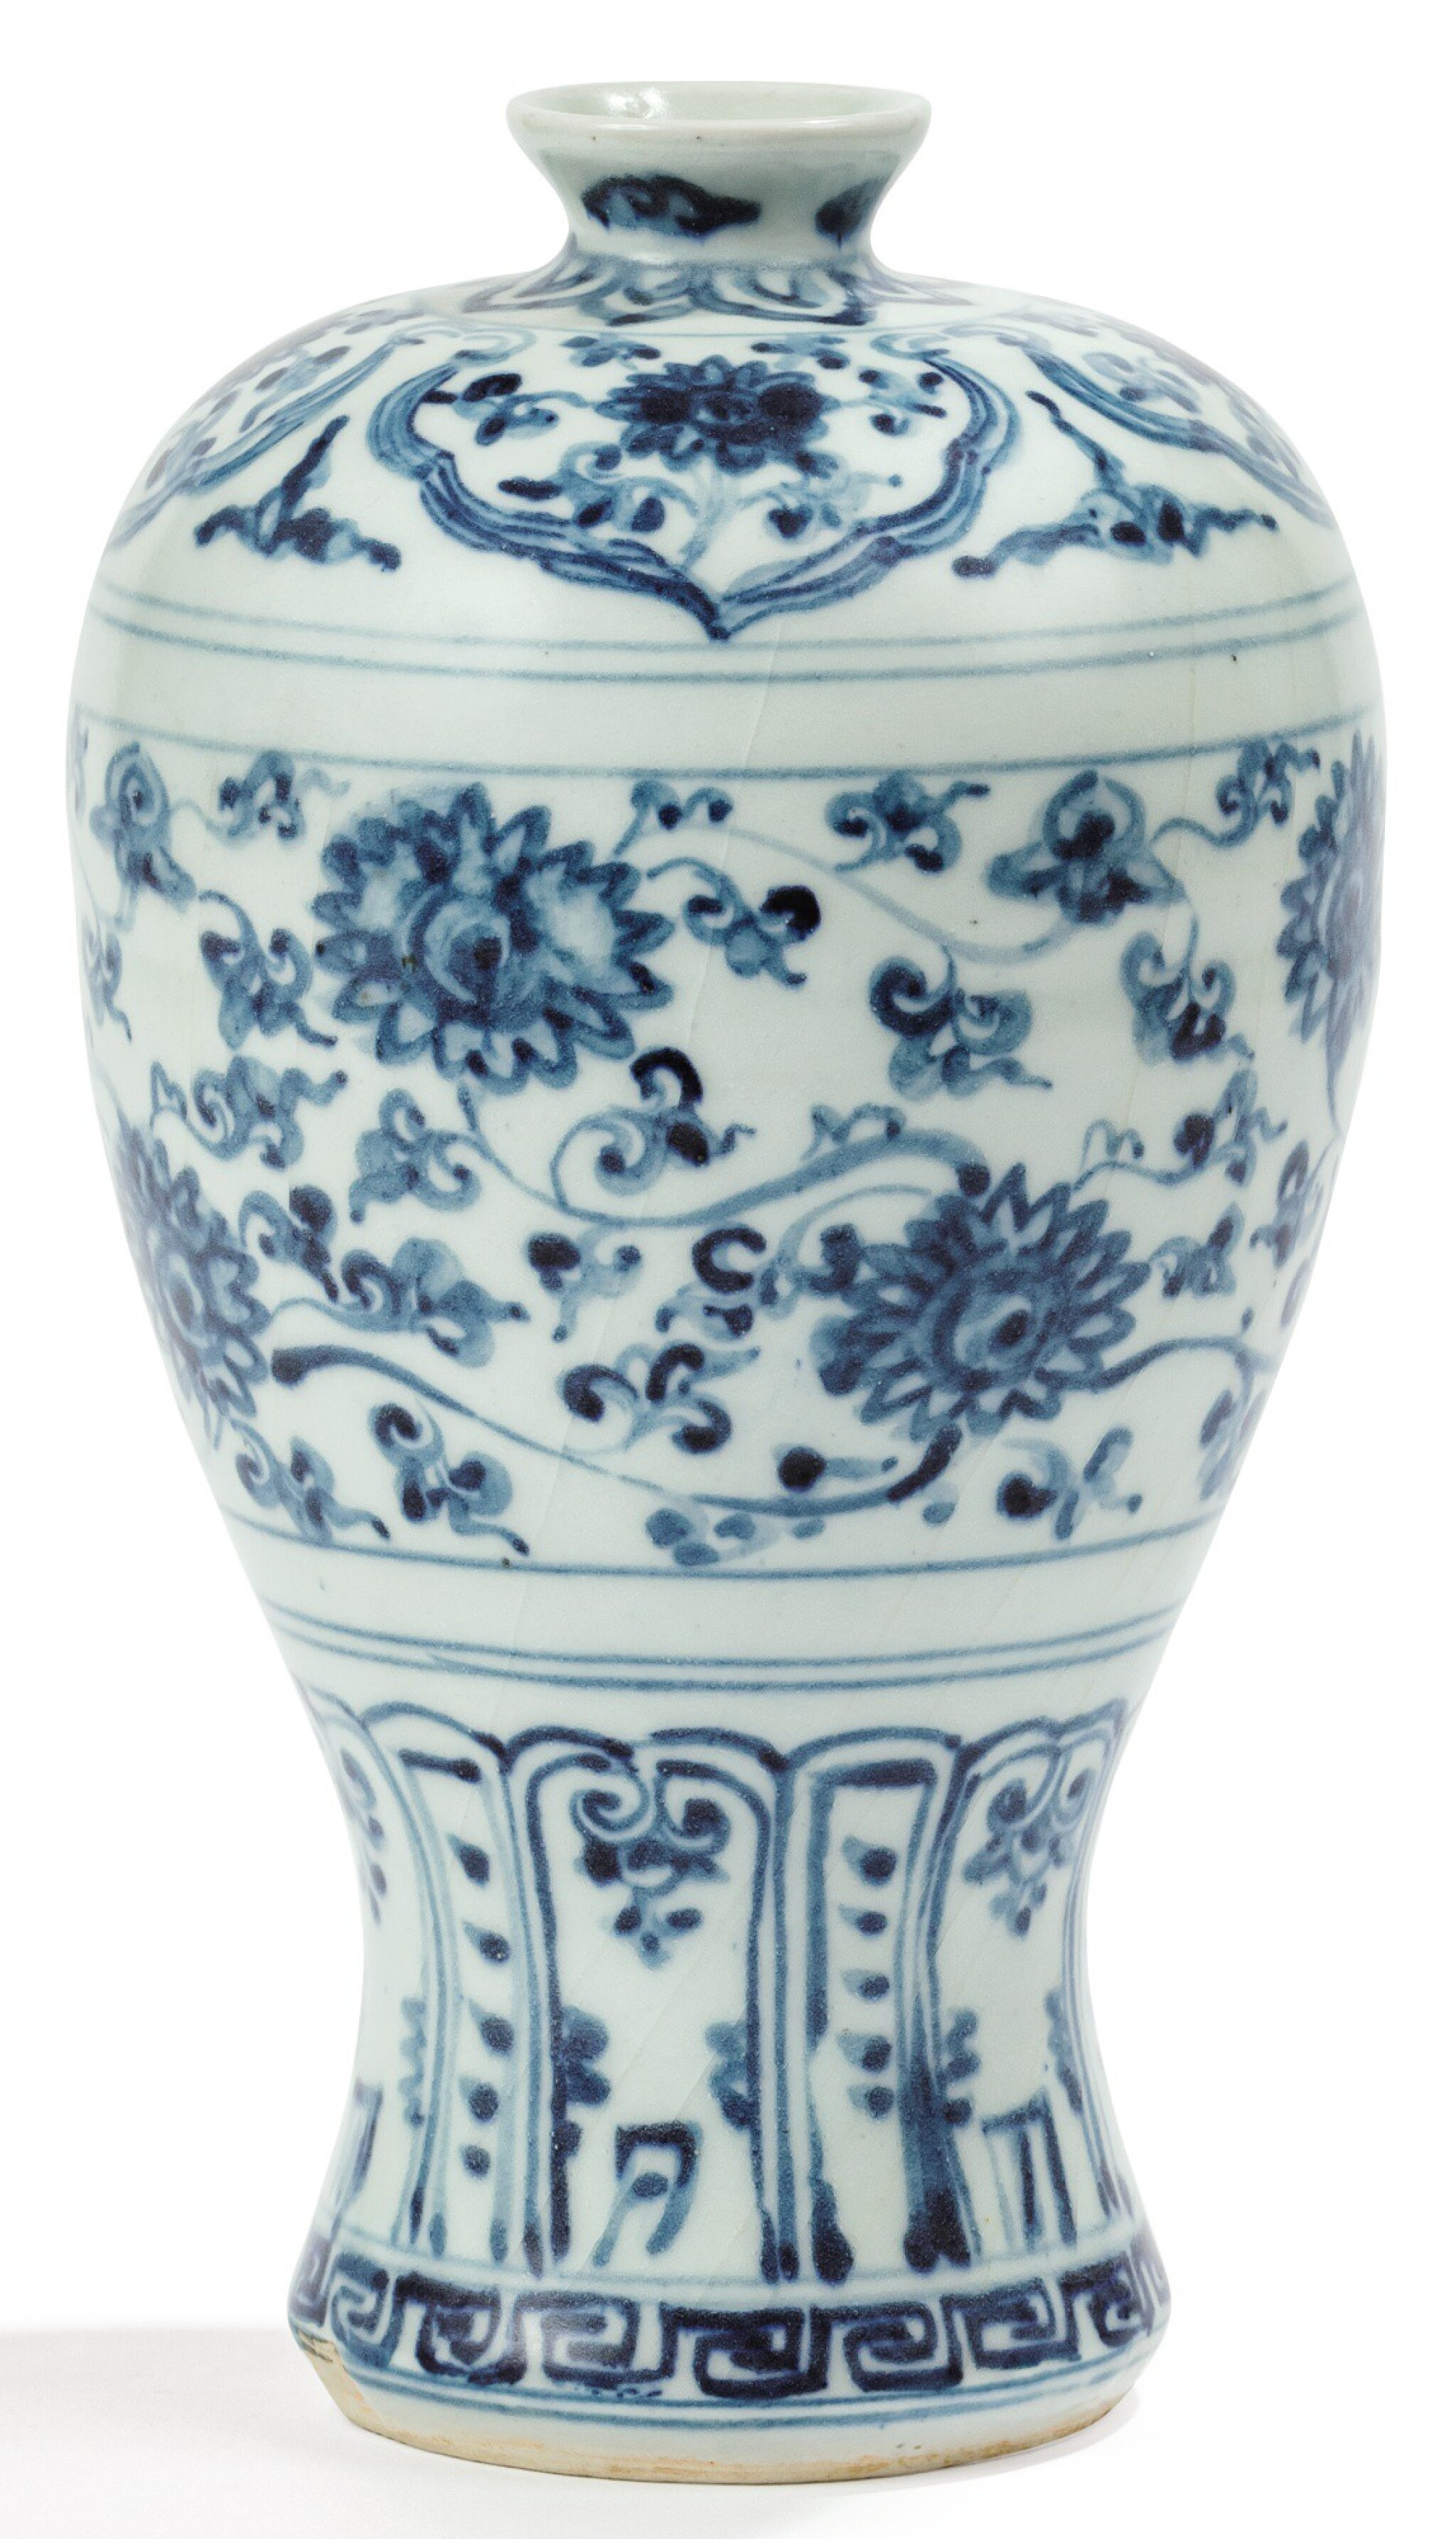 View full screen - View 1 of Lot 2. VASE EN PORCELAINE BLEU BLANC, MEIPING DYNASTIE MING, XVIE SIÈCLE | 明十六世紀 青花蓮花紋梅瓶 | A blue and white vase, meiping, Ming Dynasty, 16th century.